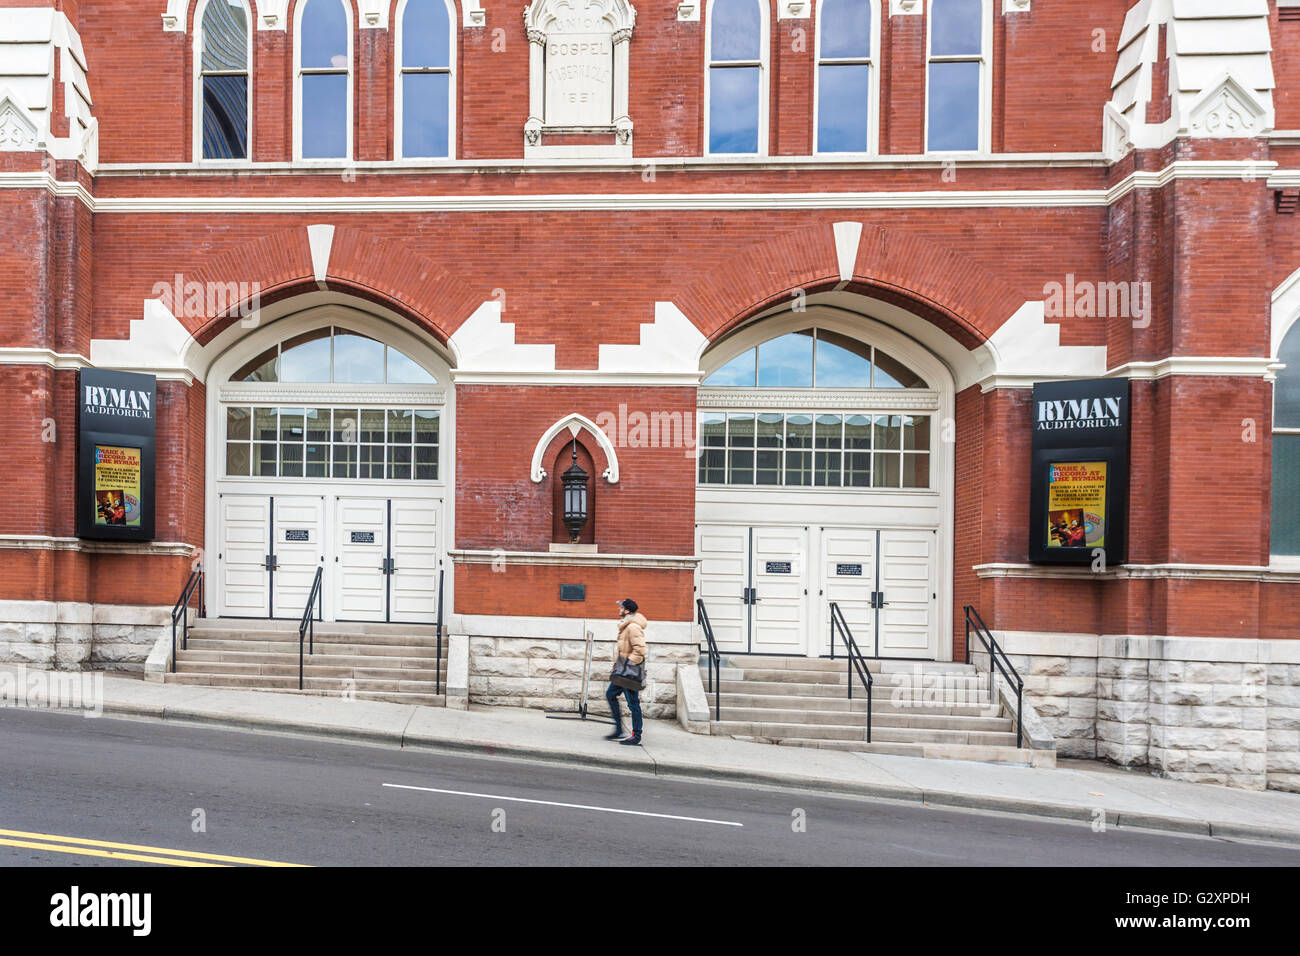 Main entrance to the historic Ryman Auditorium in downtown Nashville, Tennessee - Stock Image